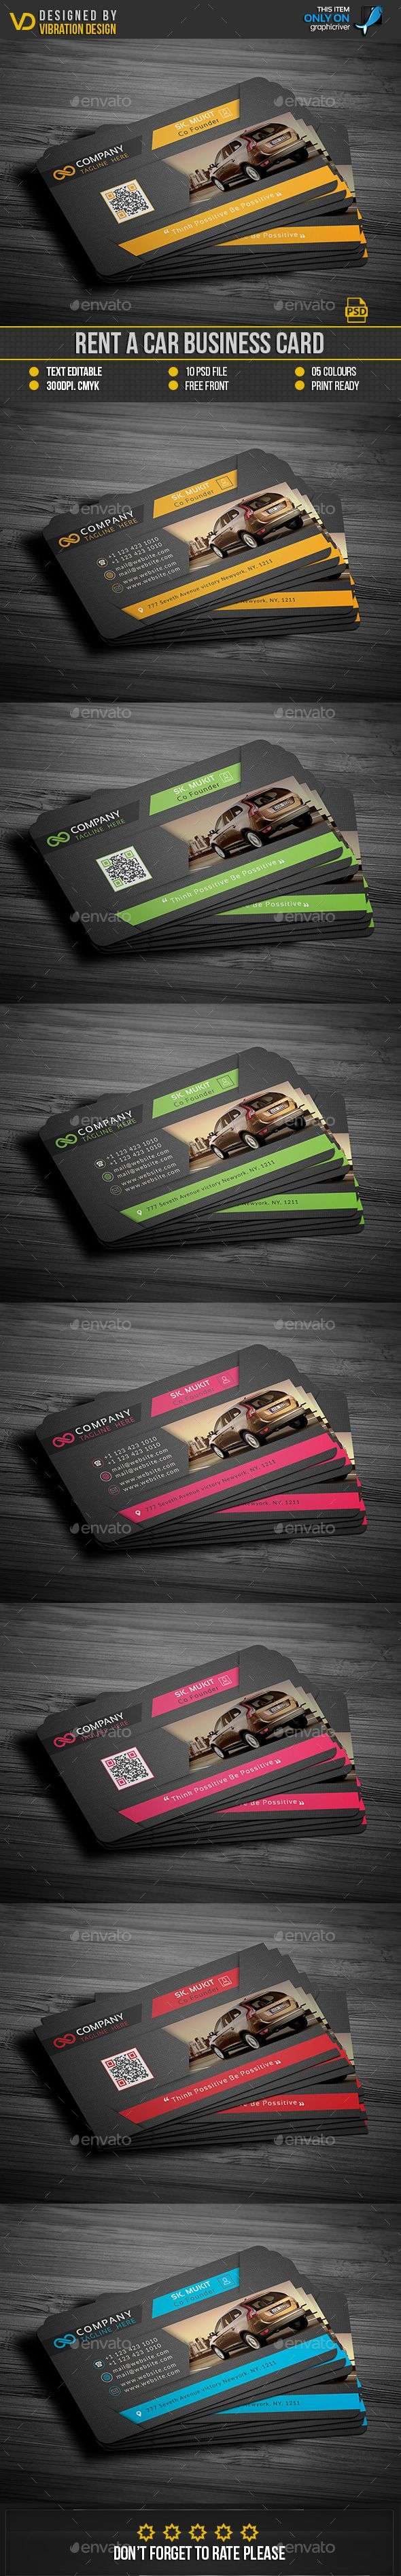 22 best rent a car business card images on pinterest business rent a car business card magicingreecefo Images